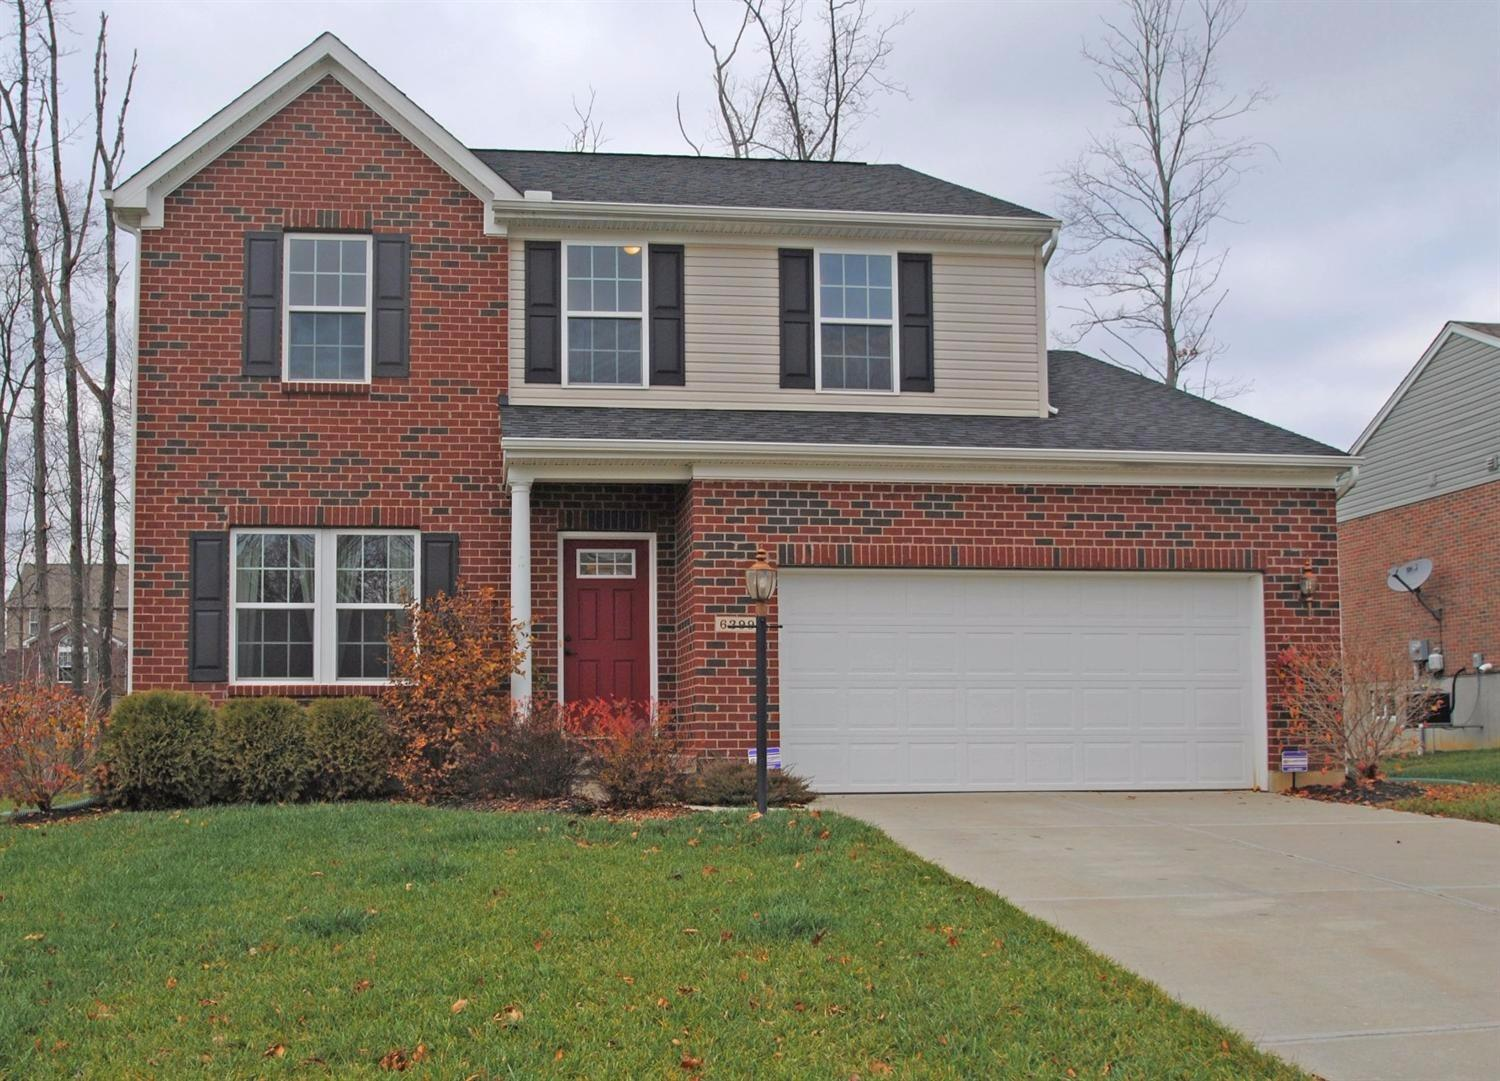 Photo 1 for 6399 Arabian Dr Independence, KY 41051